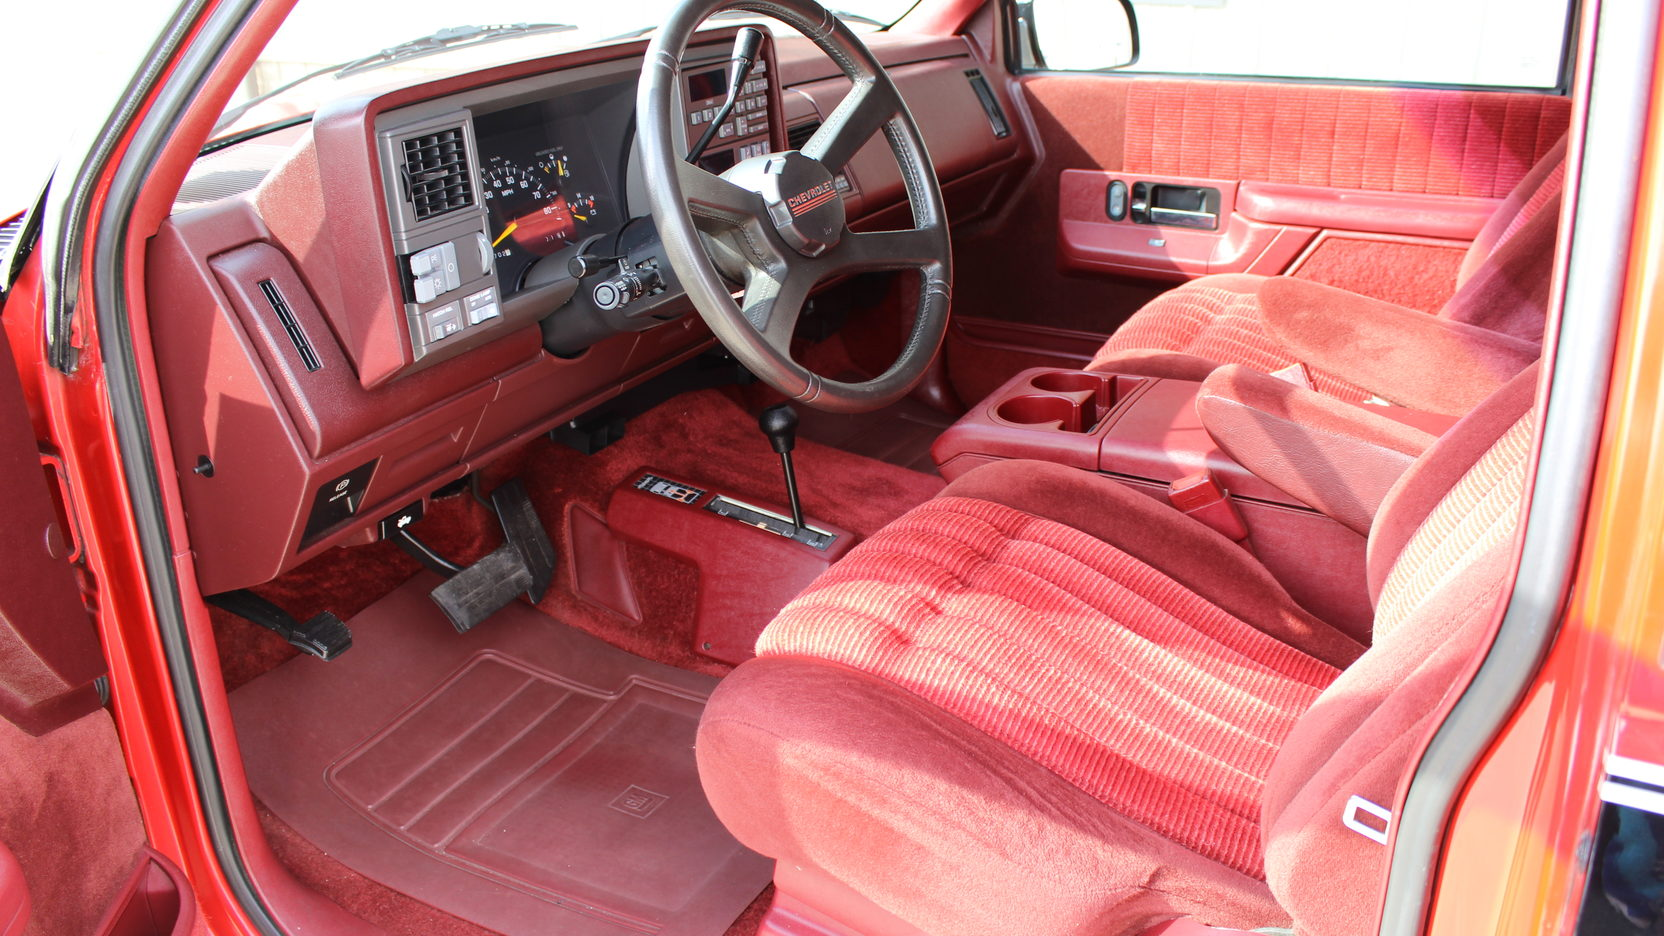 1992 Chevrolet Blazer interior